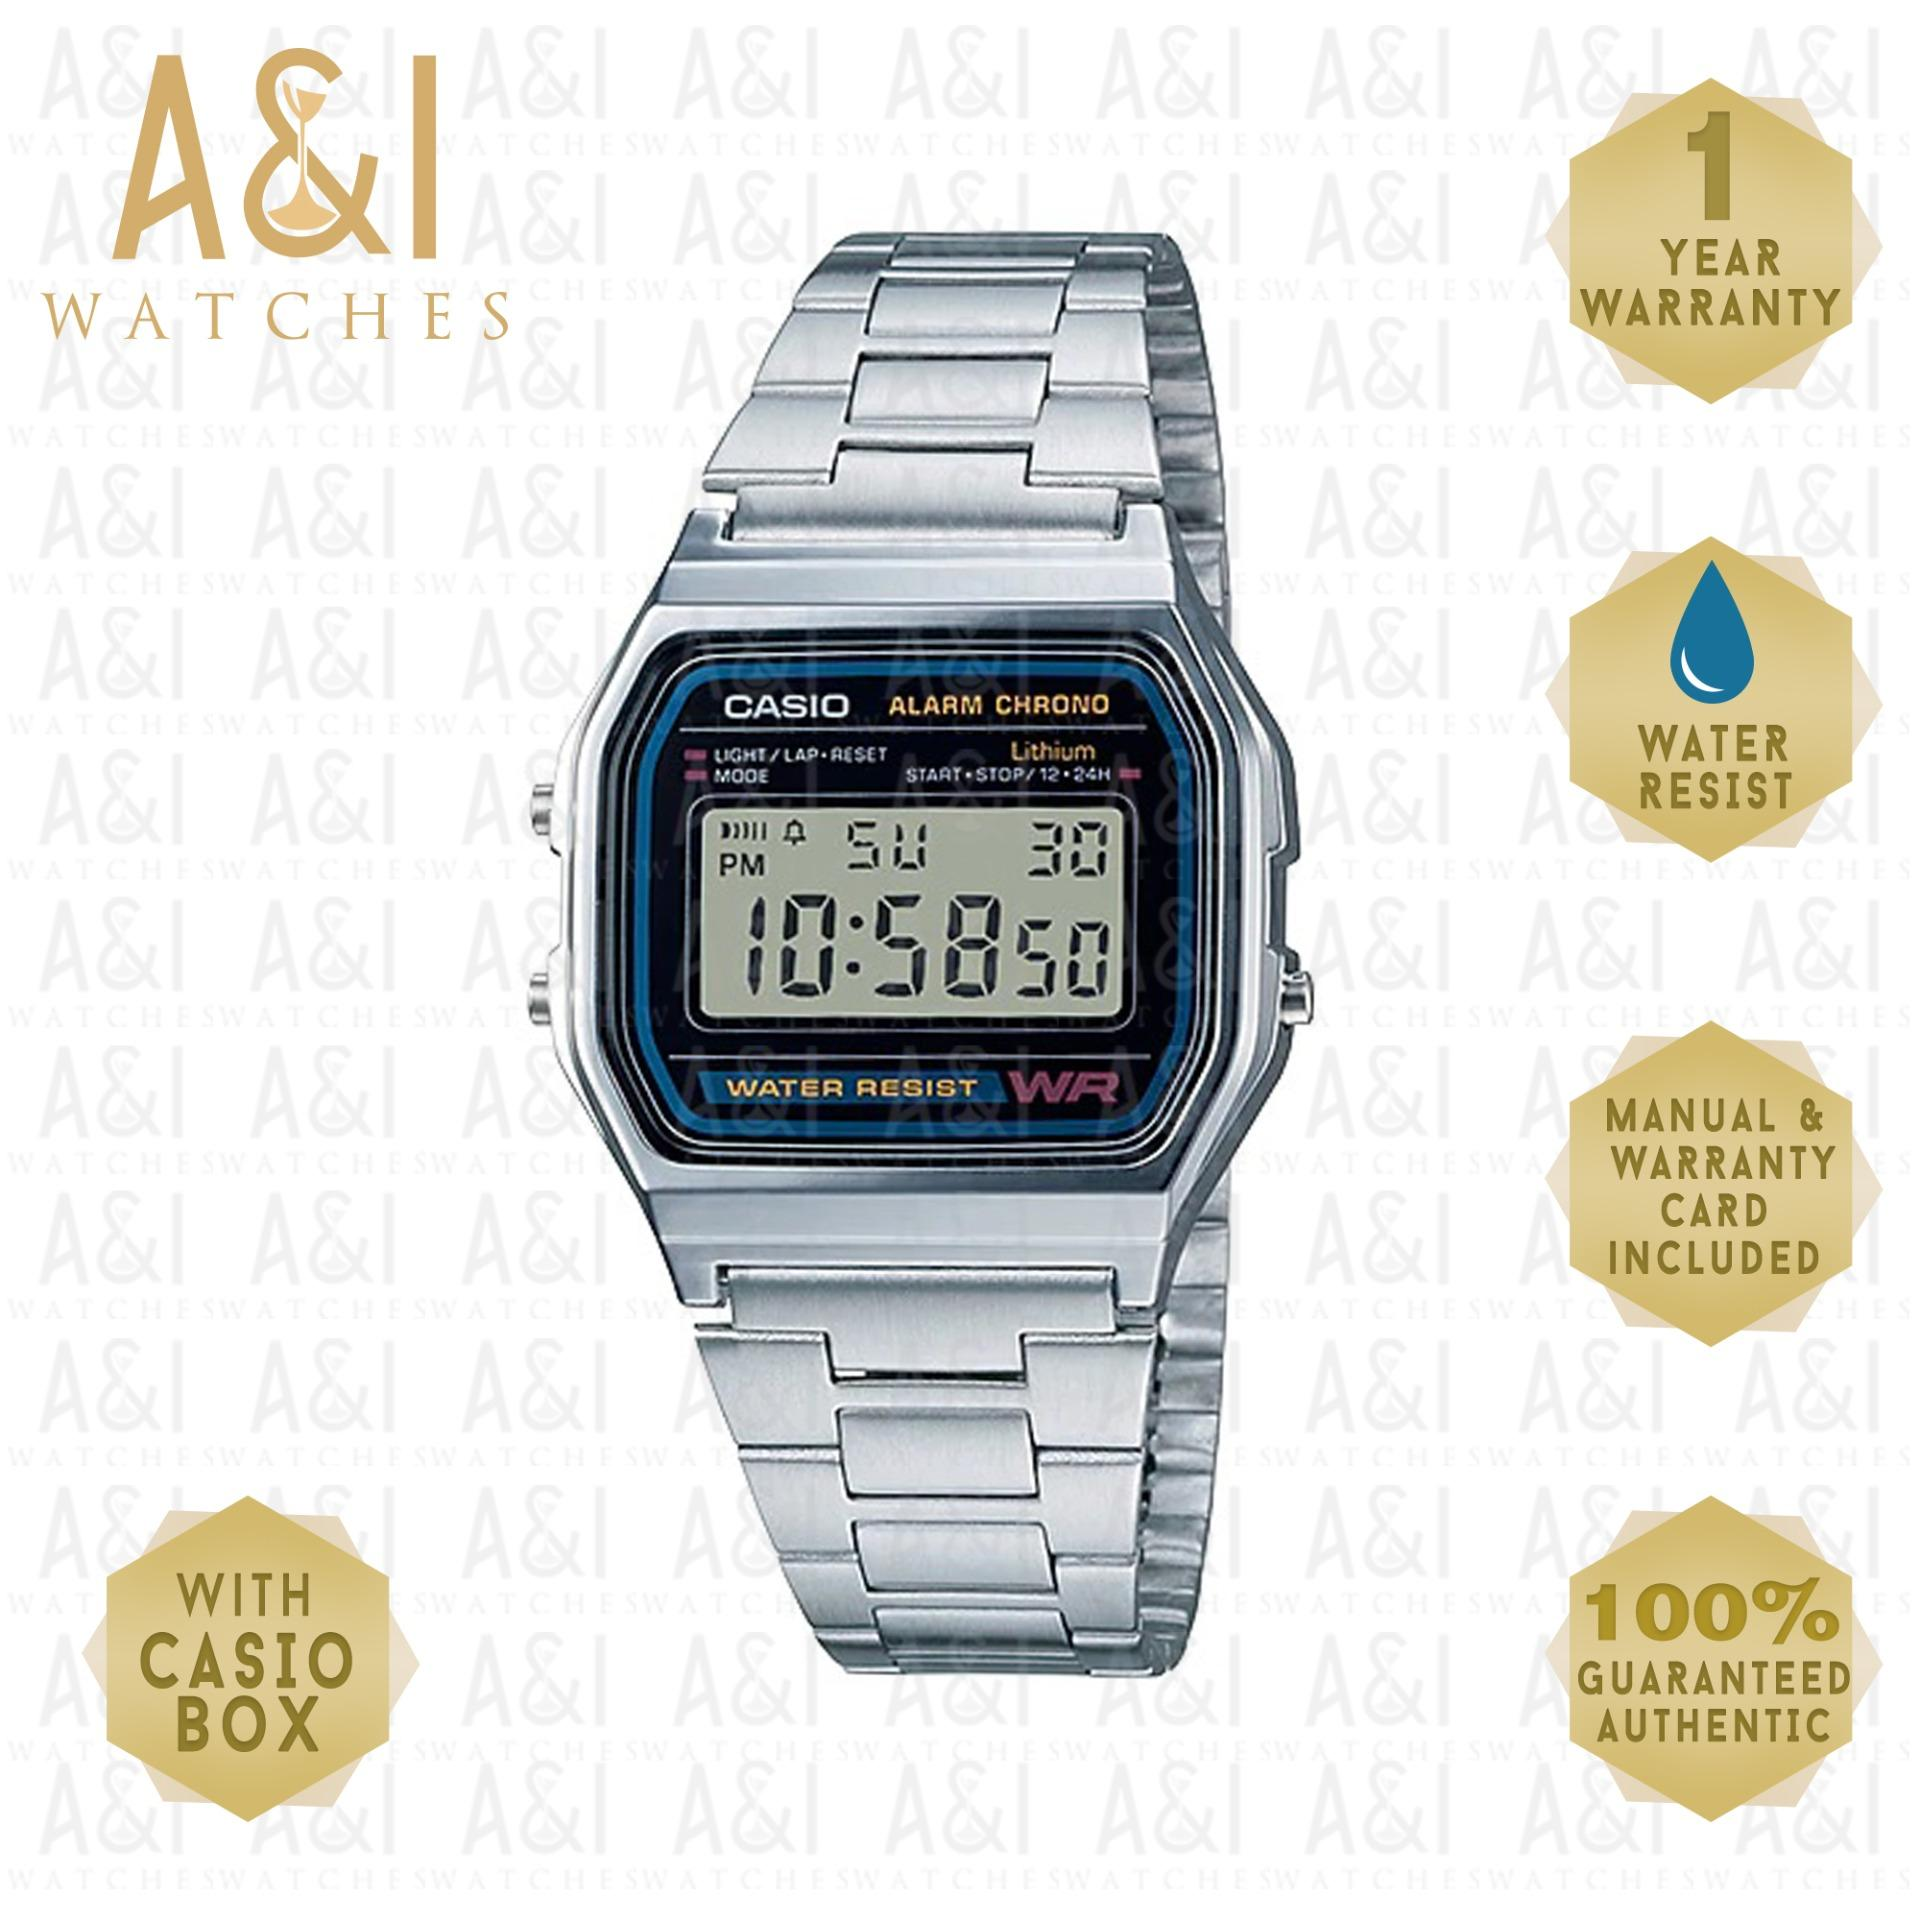 Casio Philippines Watches For Sale Prices Reviews Lazada Jam Tangan Ae 1000w 1b Original Vintage Silver A158wa 1df 1yr Warranty